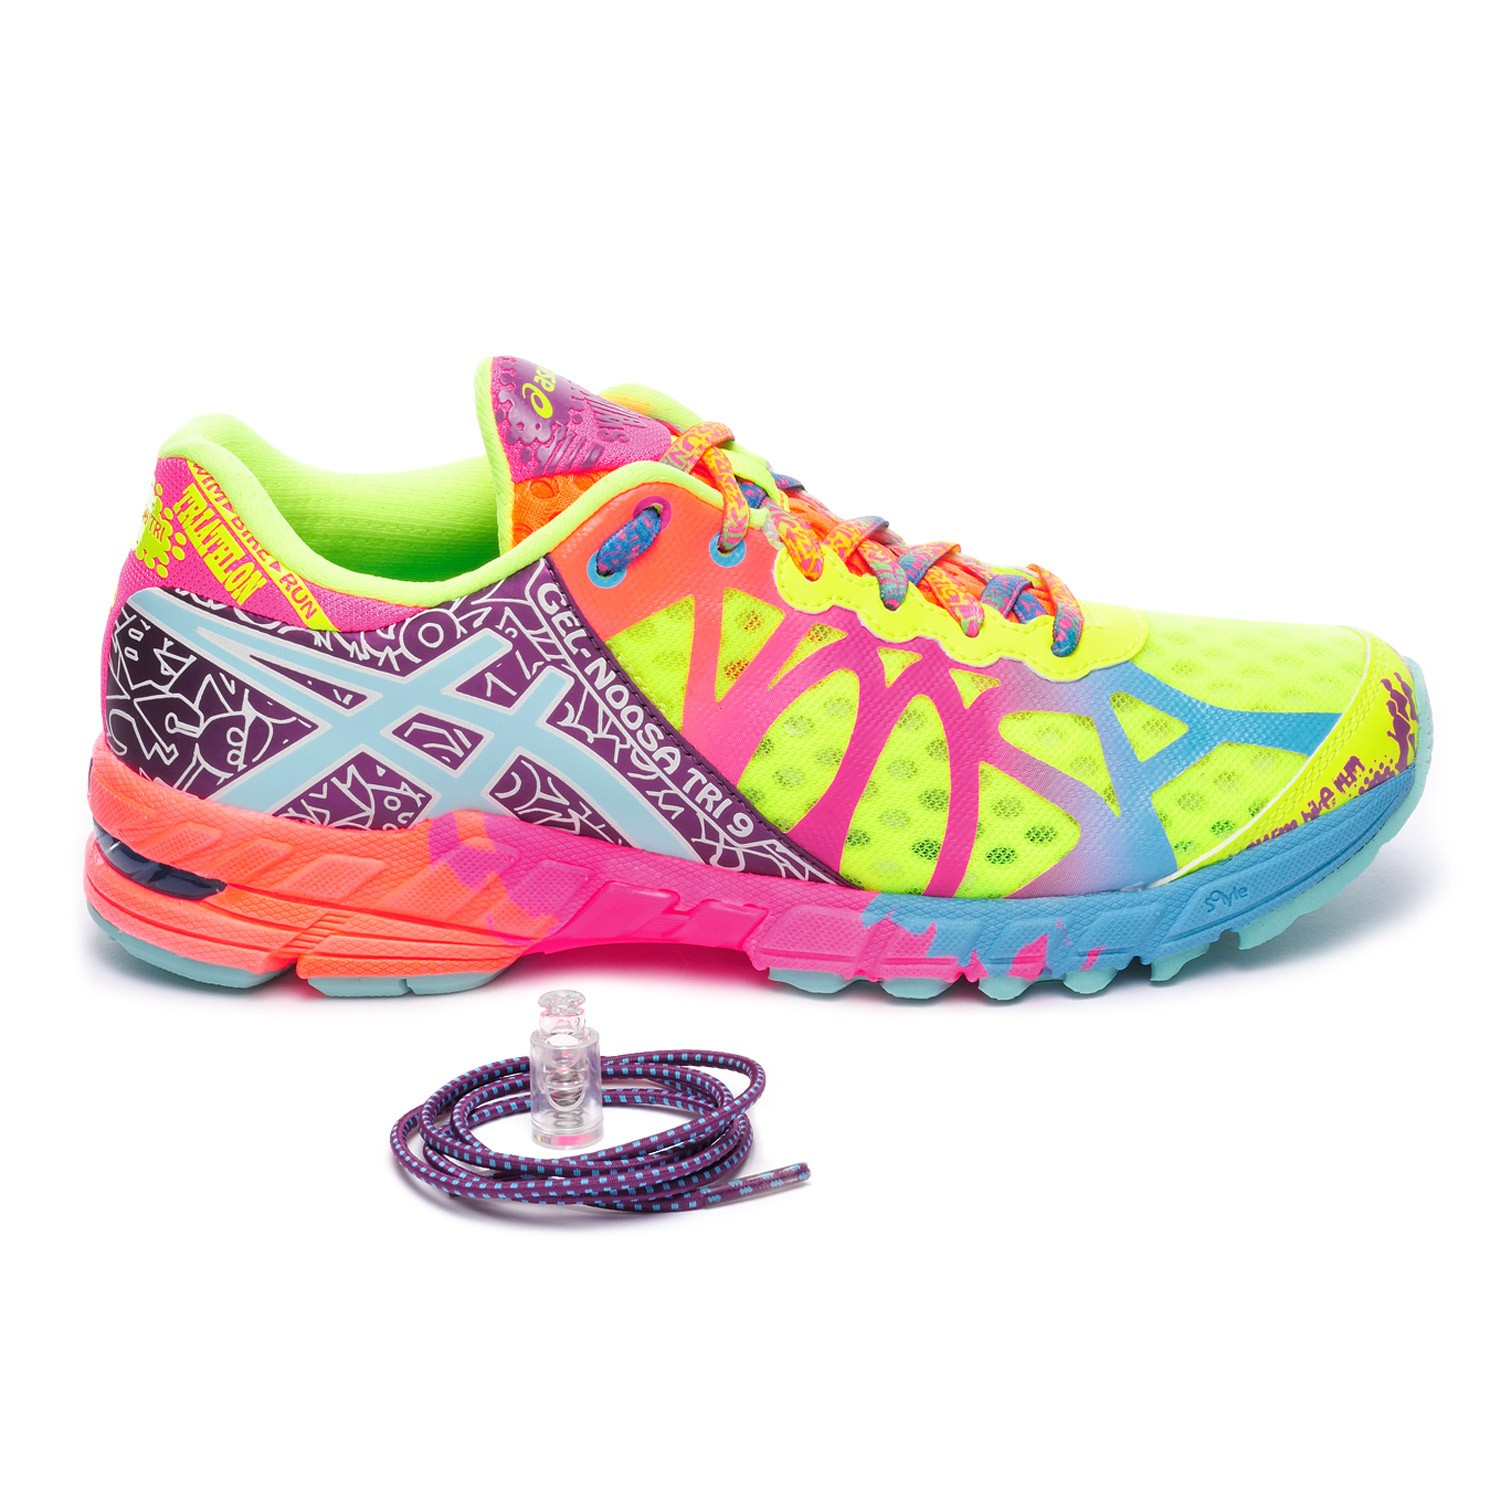 asics femme running soldes Cheaper Than Retail Price> Buy Clothing ...